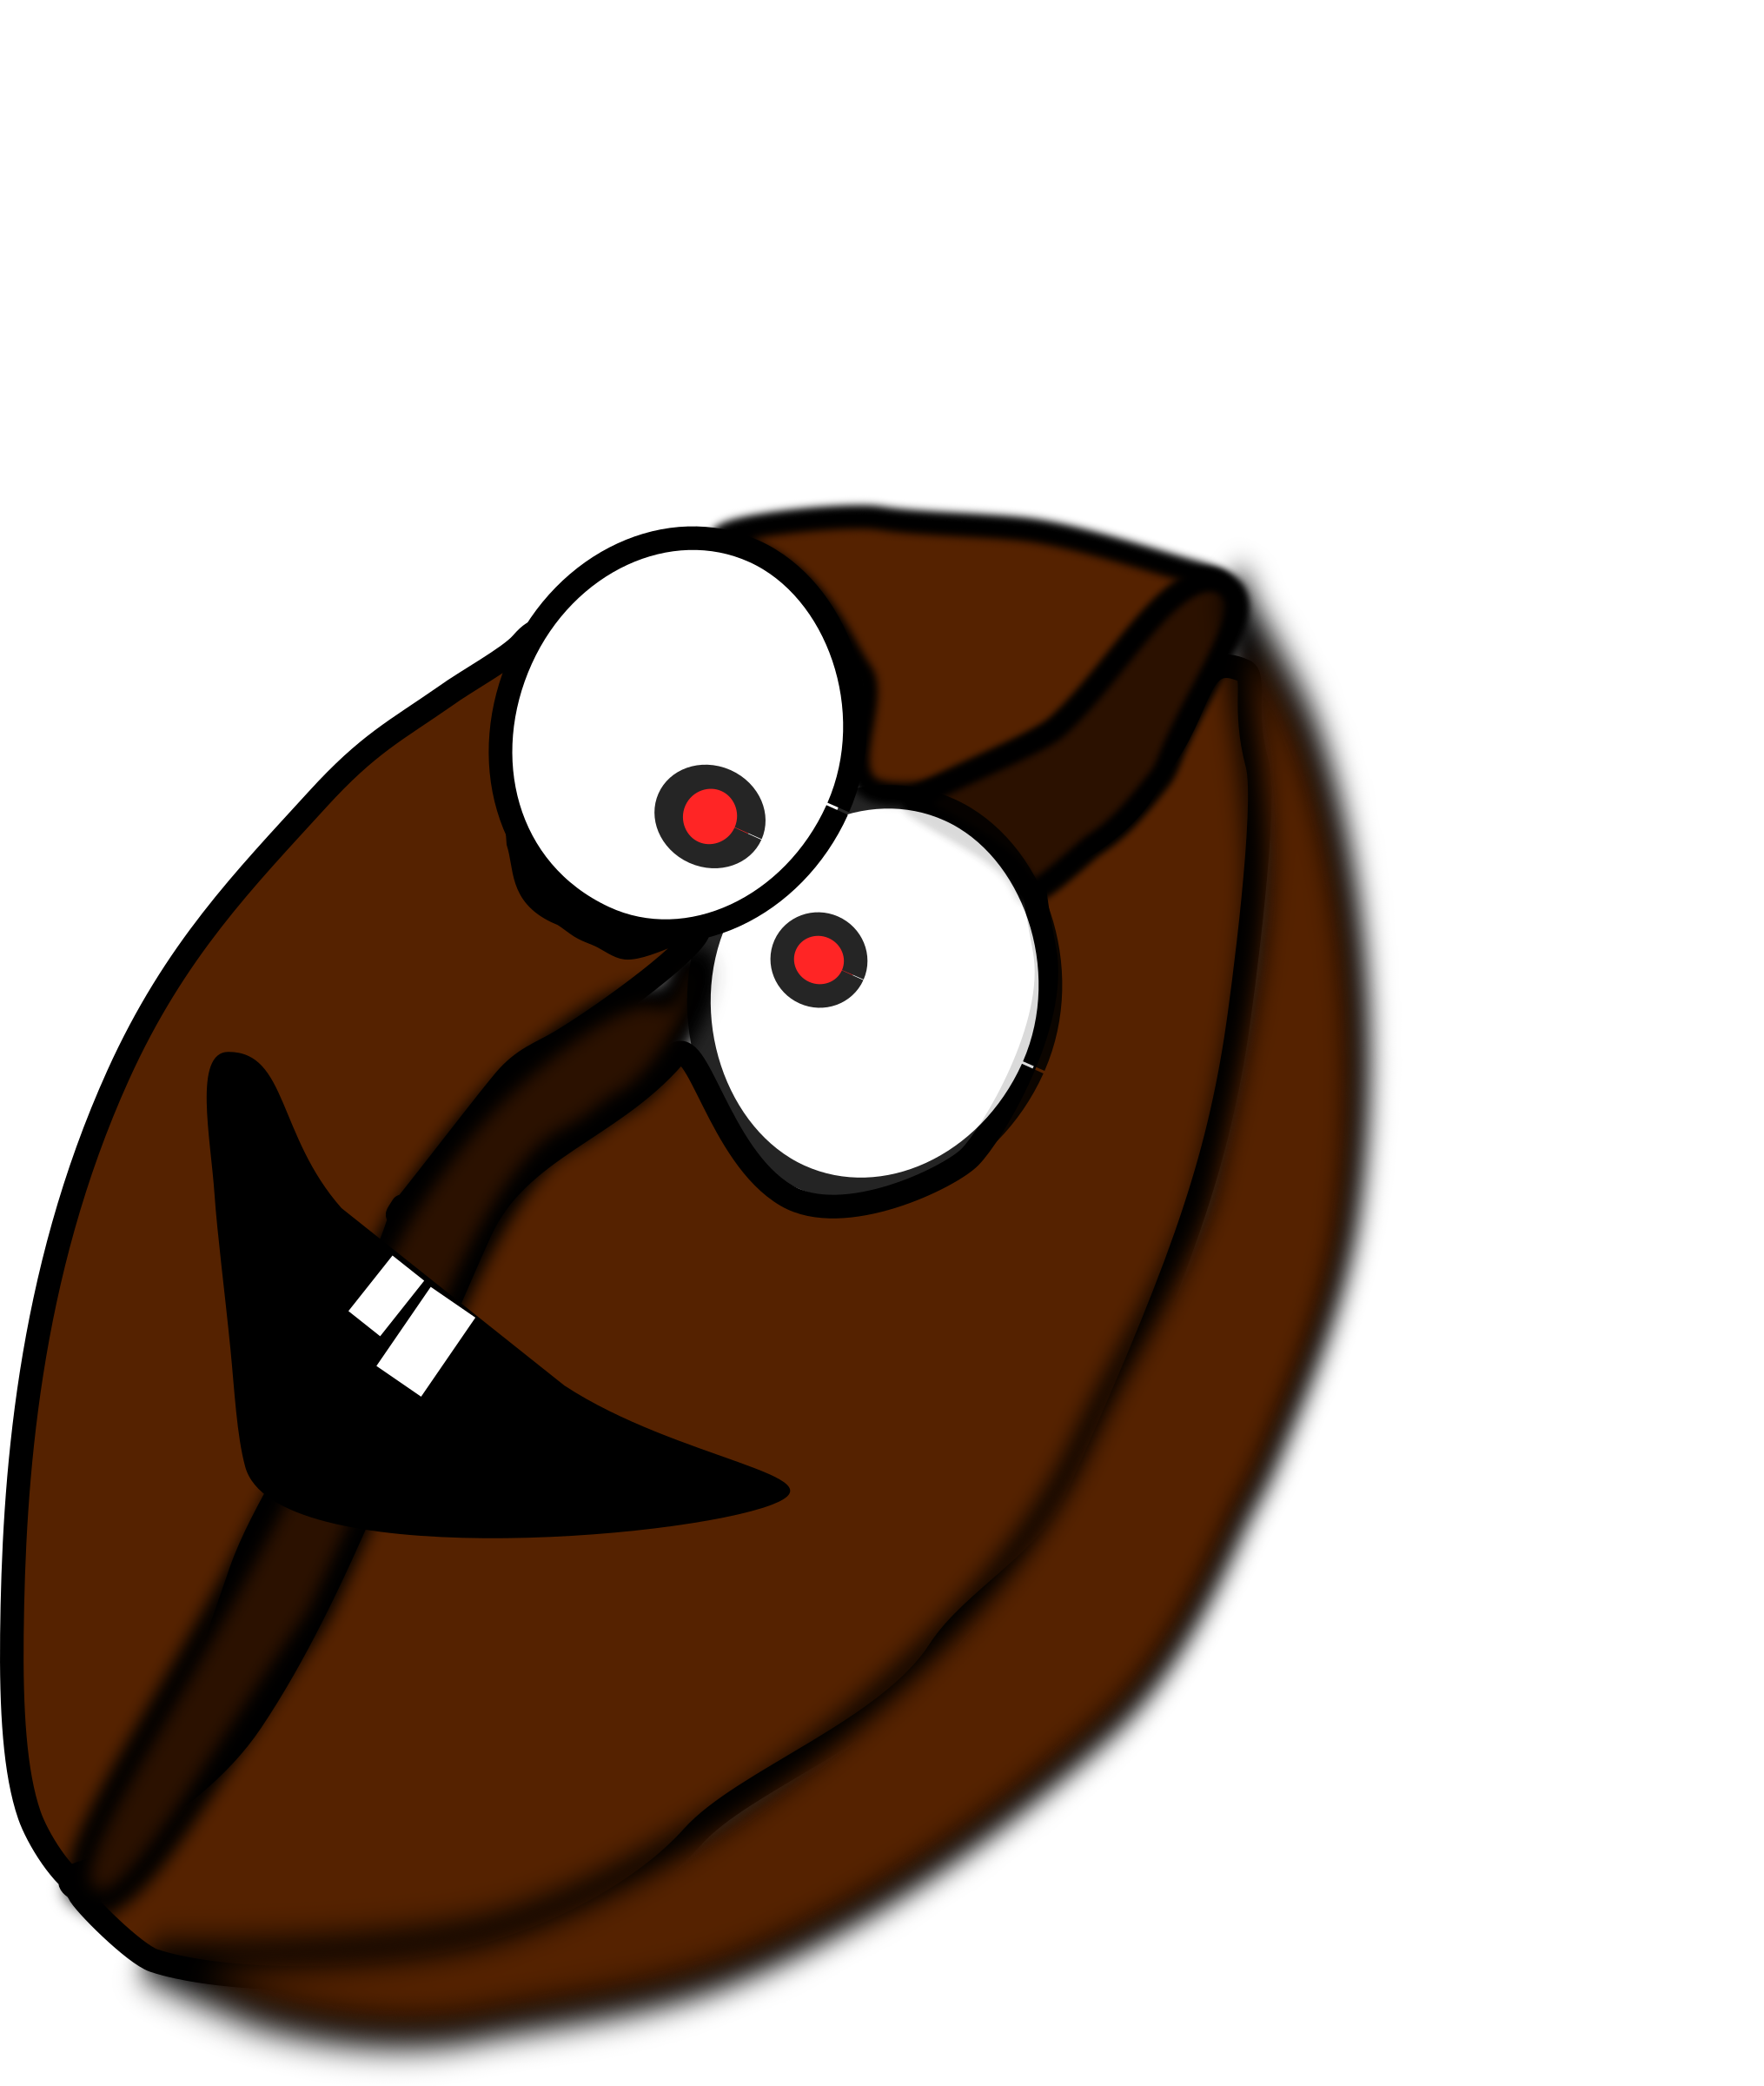 Beans clipart face Colombiano Cafesito BIG (PNG) IMAGE